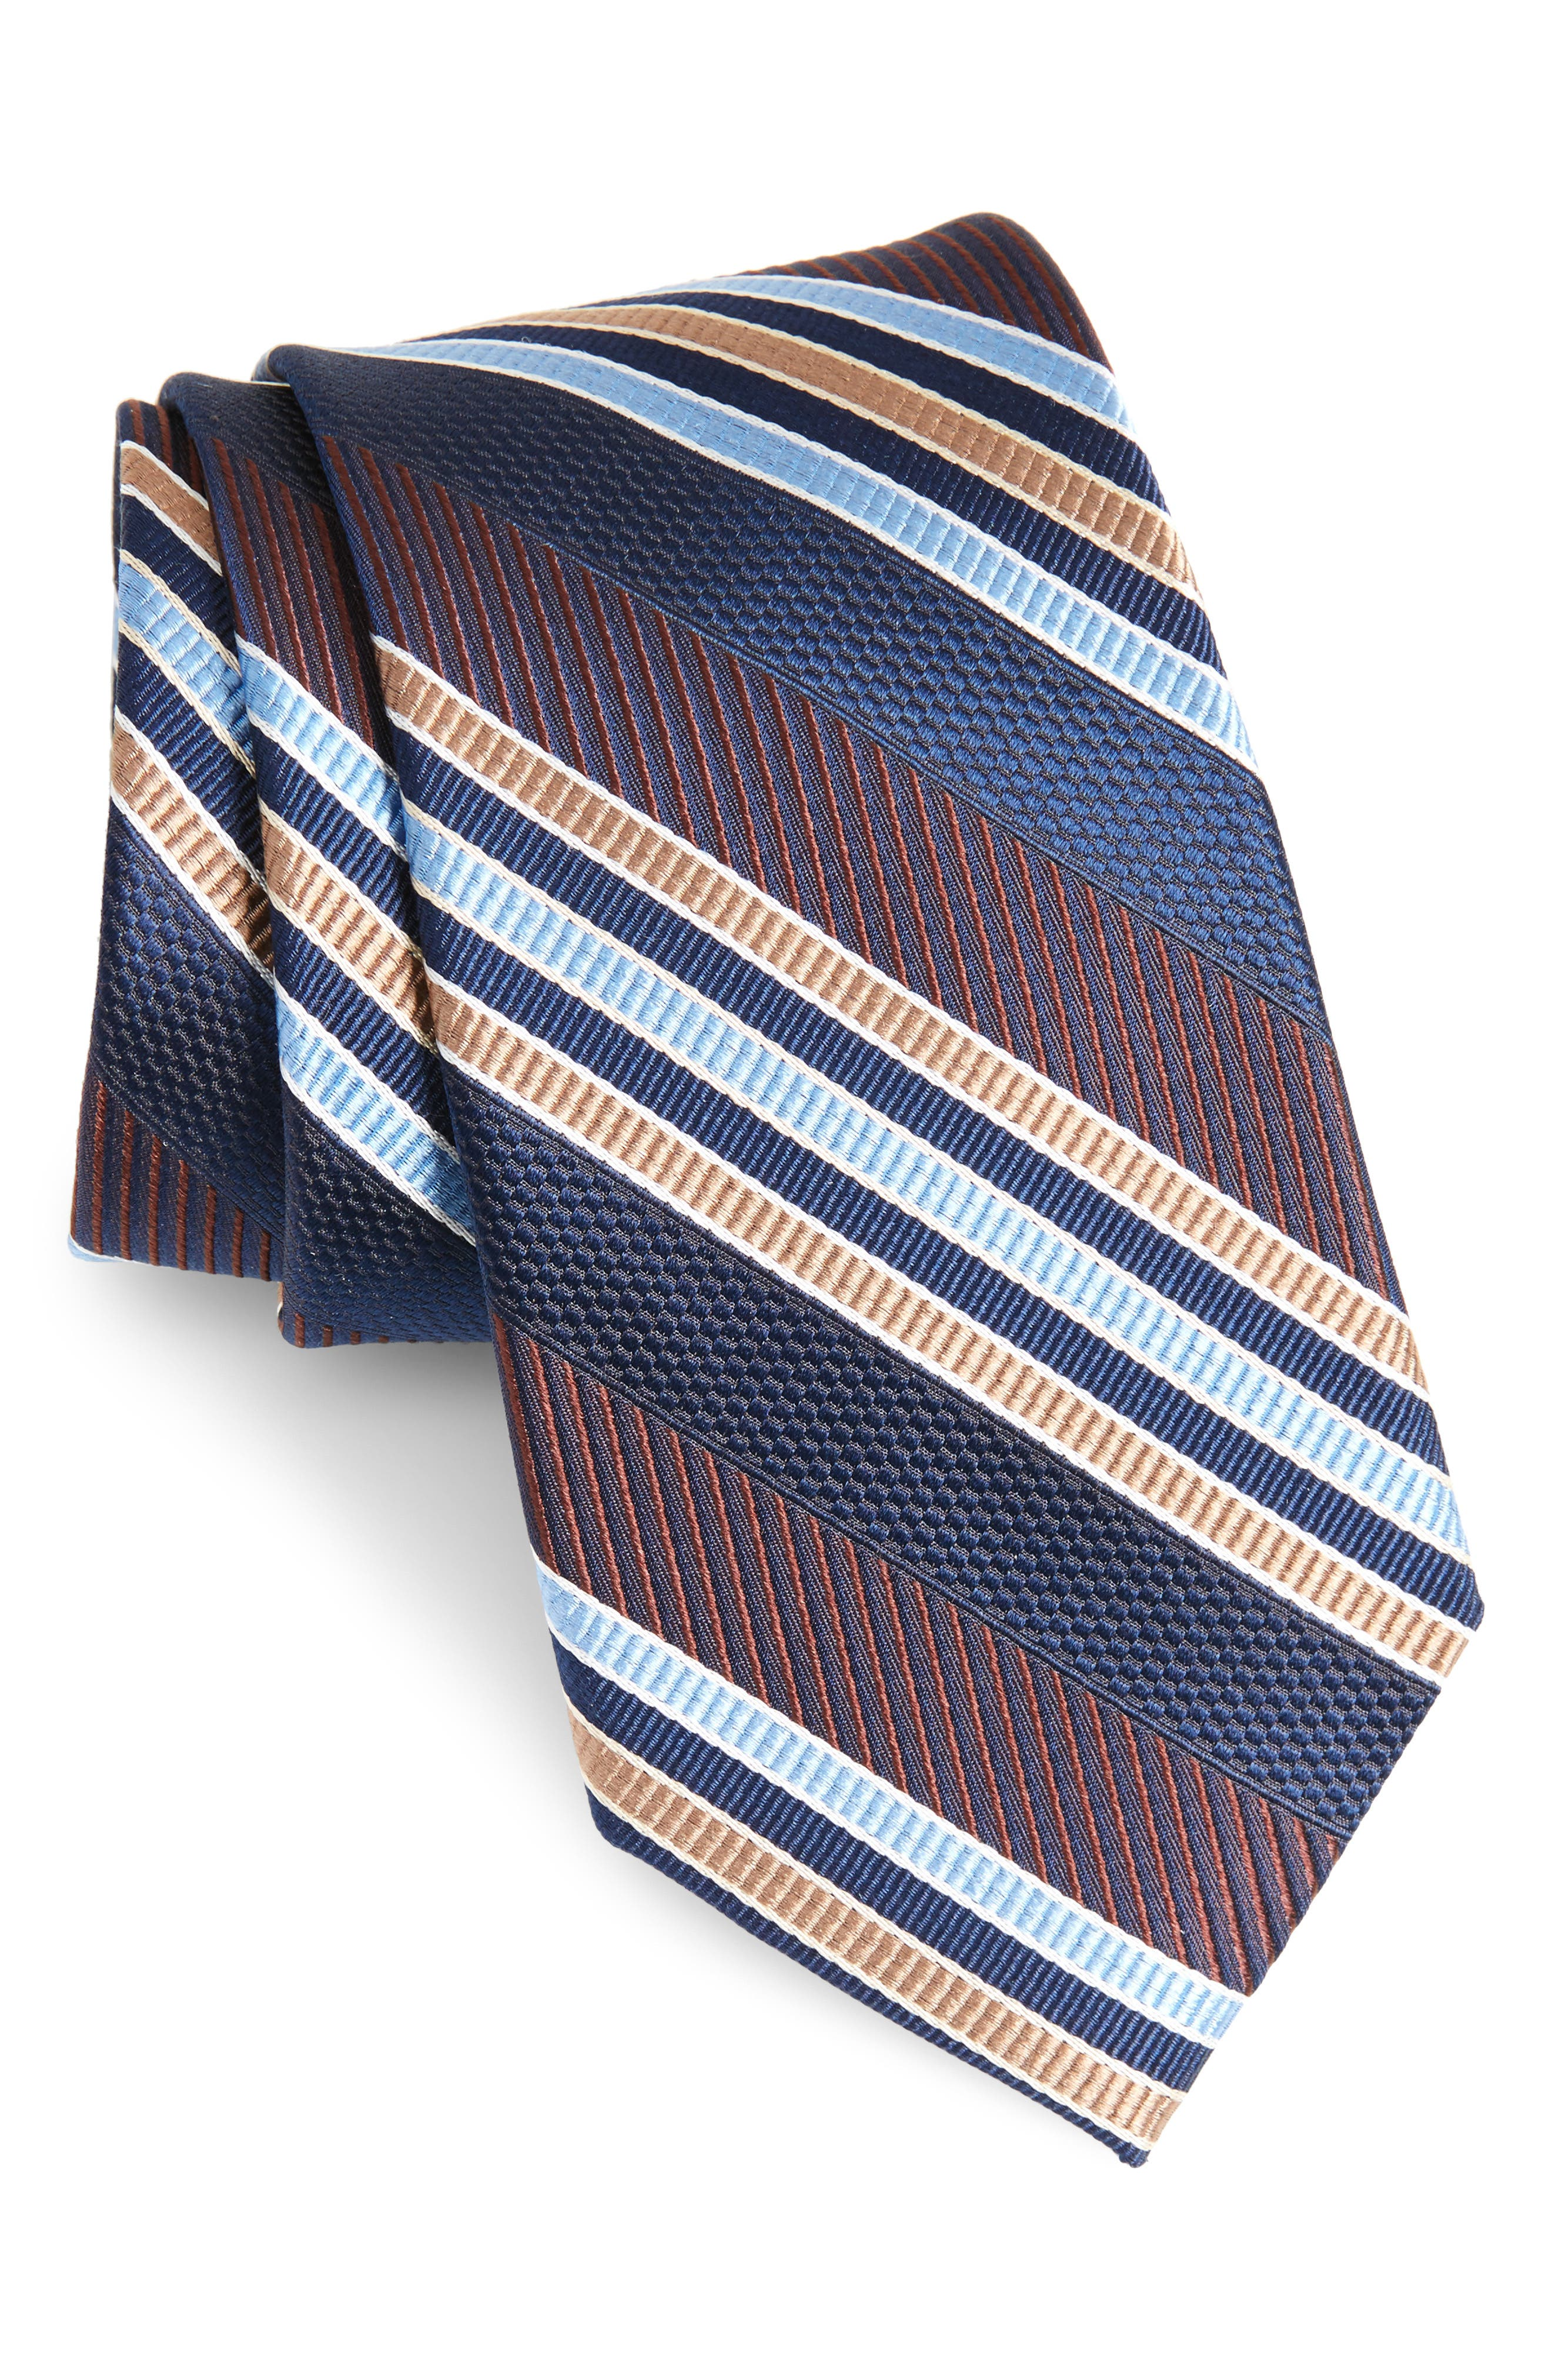 Northwest Stripe Silk Tie,                             Main thumbnail 1, color,                             210